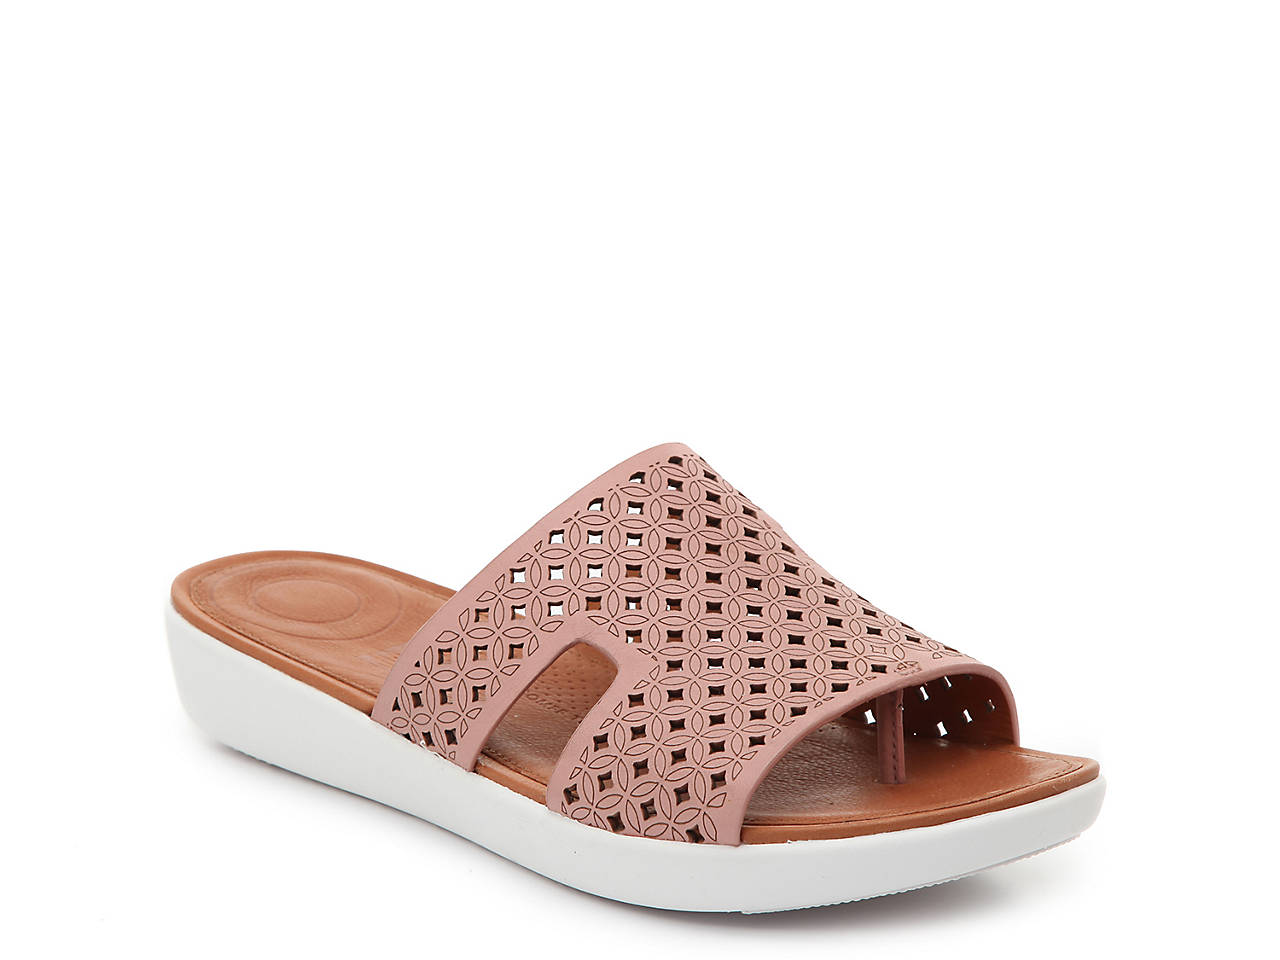 fa781e322 FitFlop H-Bar Wedge Sandal Women s Shoes